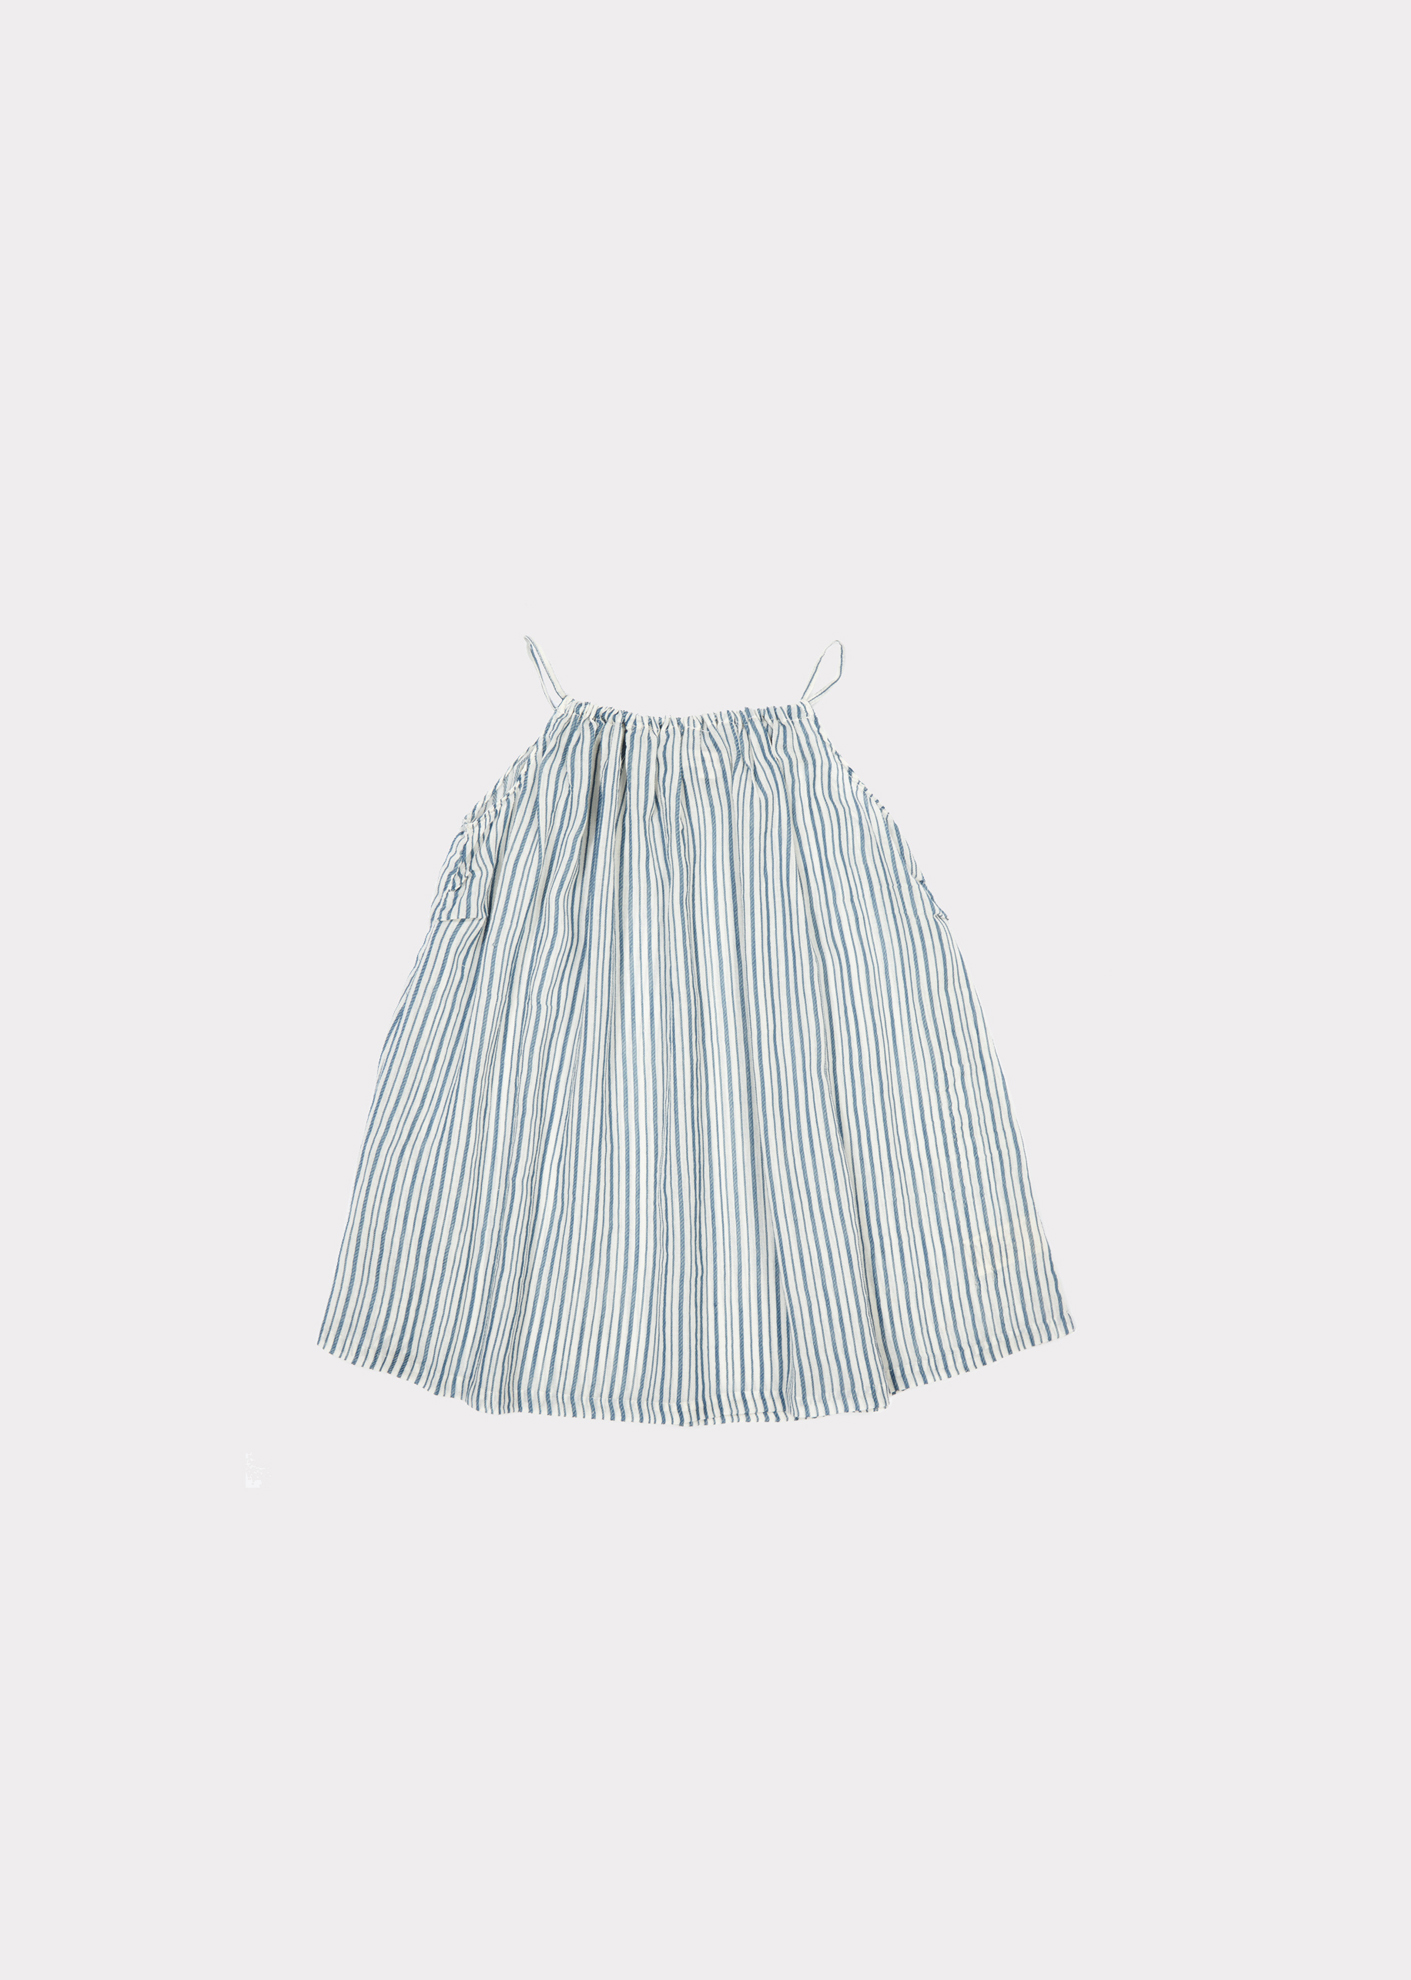 Caramel  - WINDERMERE BABY DRESS BLUE STRIPE - Clothing